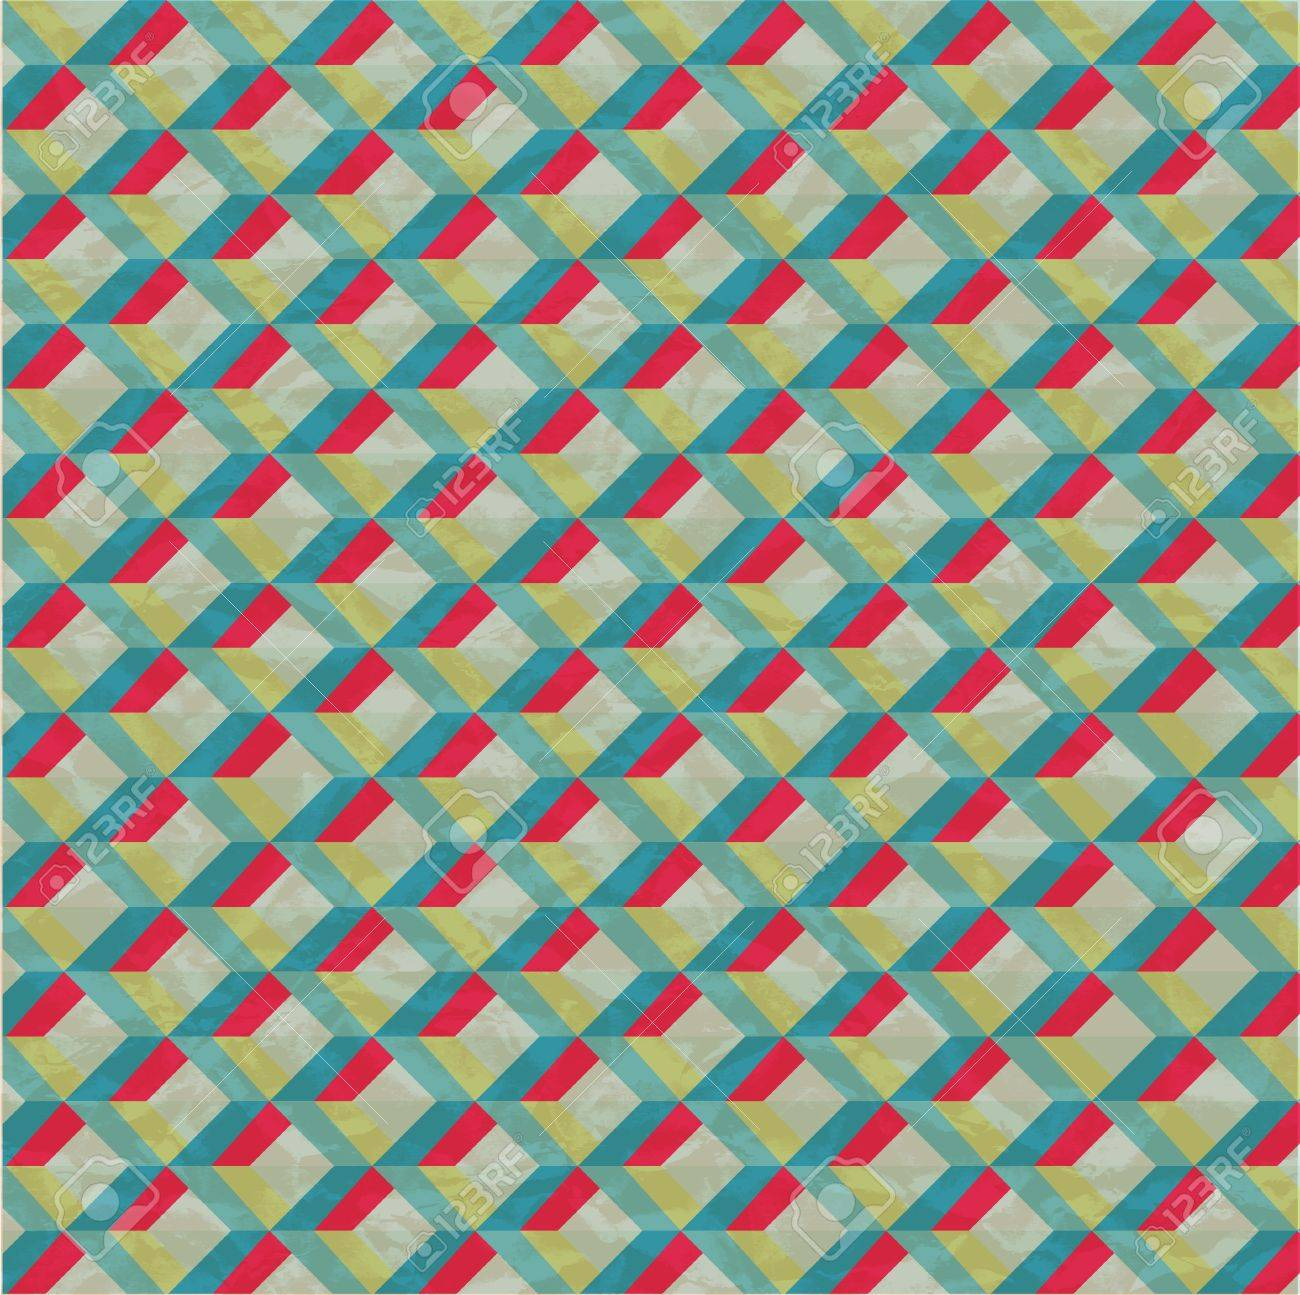 Abstract retro-style background  Vector Stock Vector - 18428895